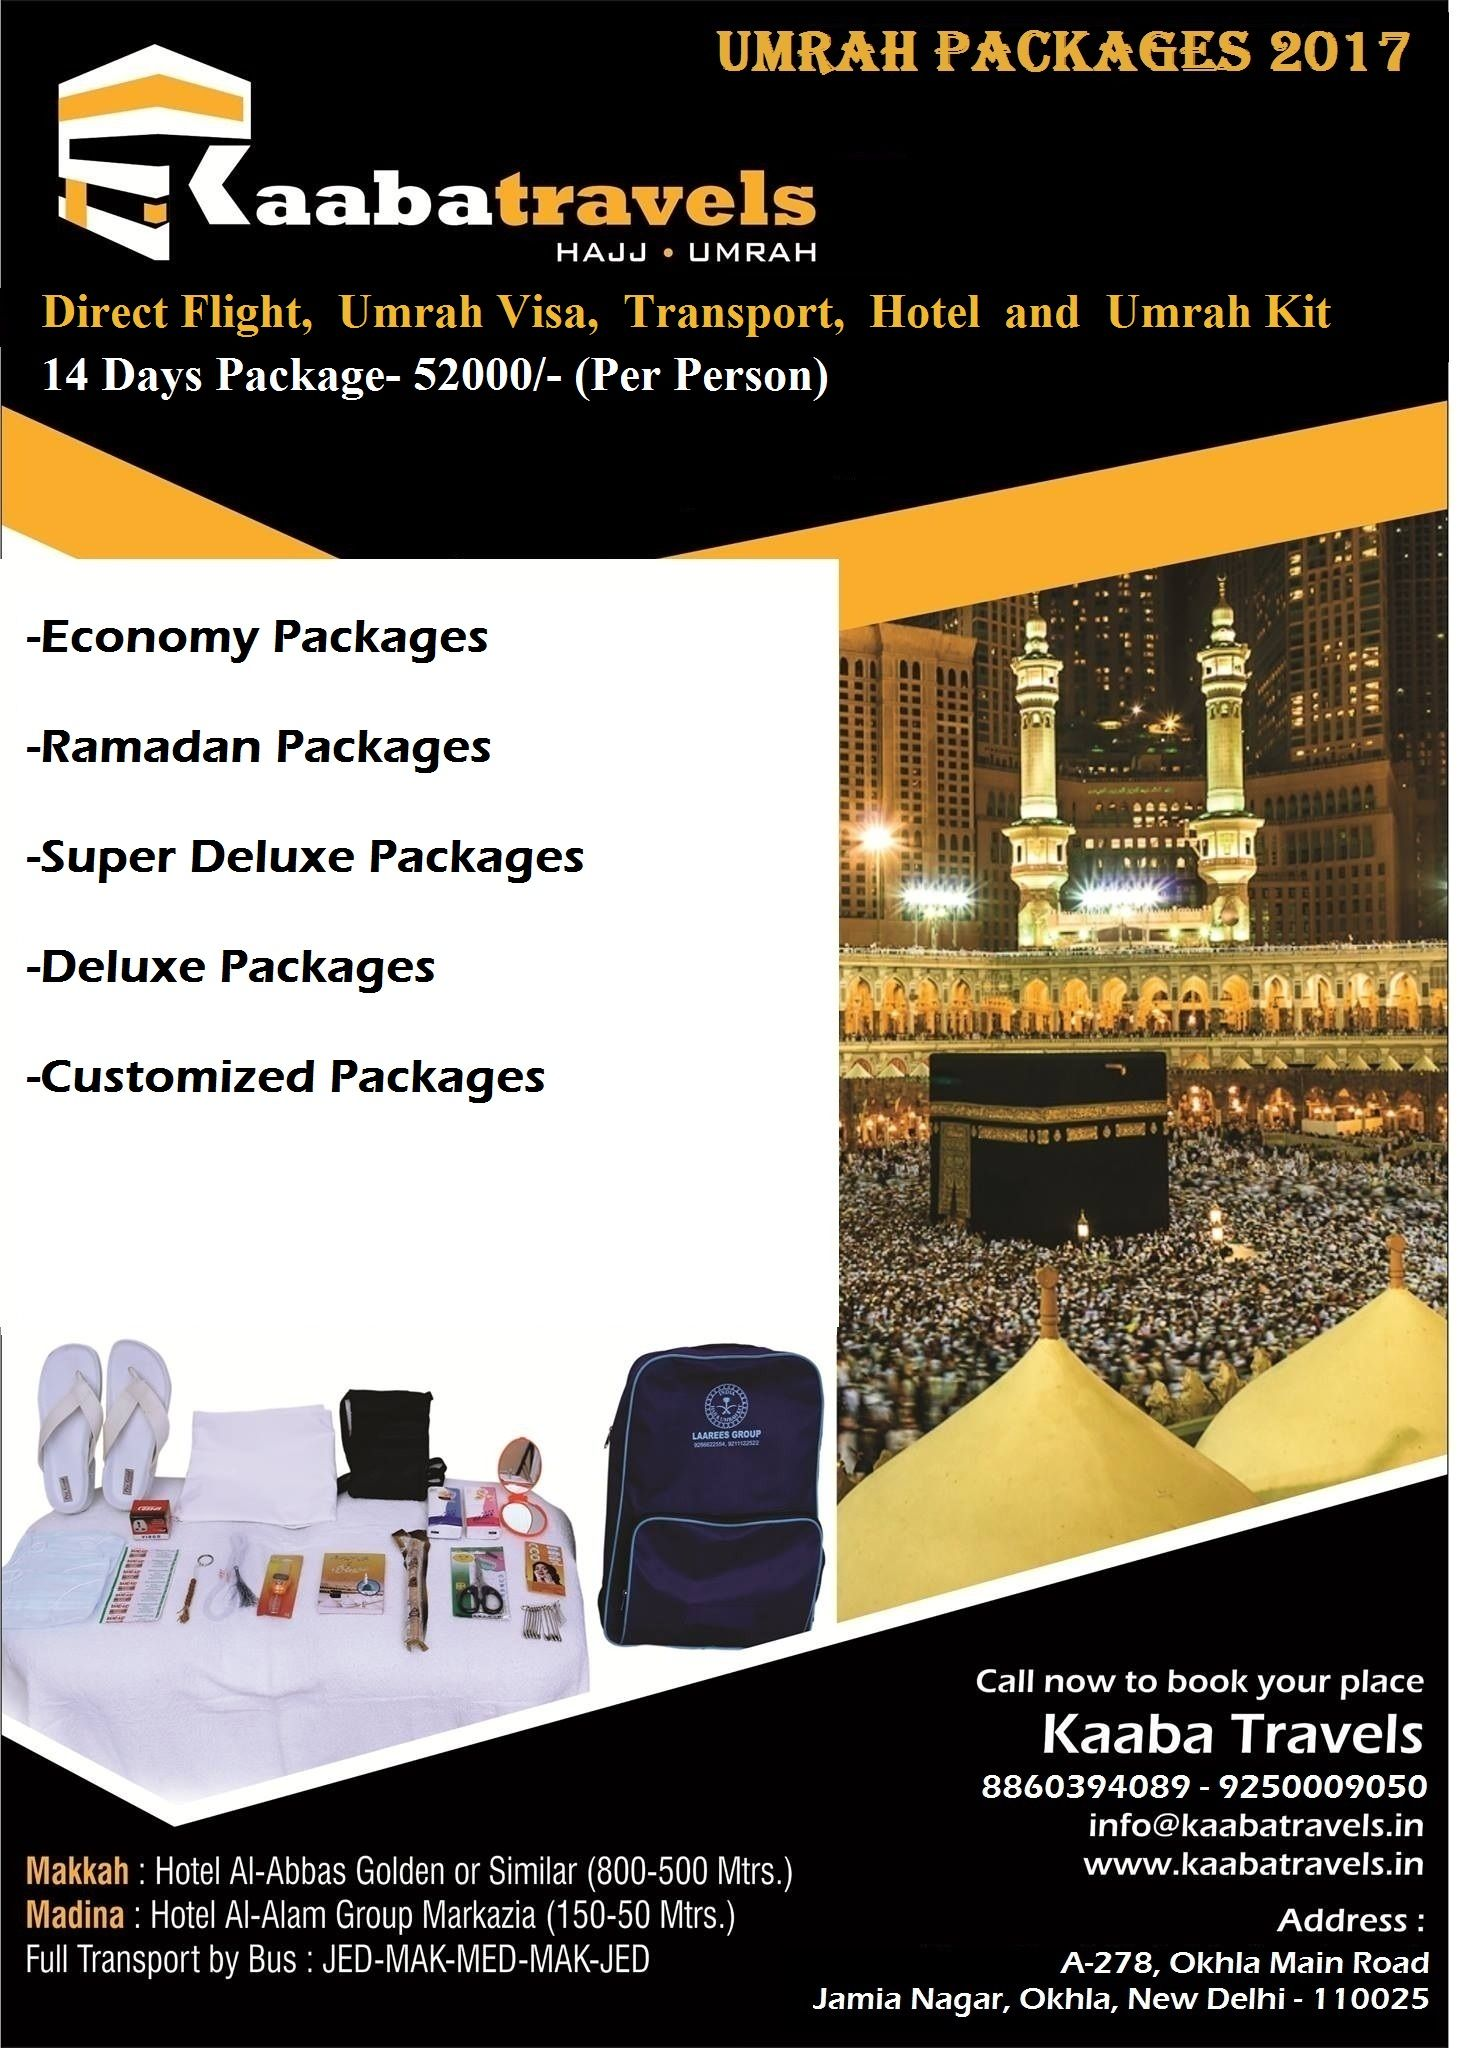 Umrah Banner: The Best Hajj & Umrah And Packages In Delhi NCR, #Umrah